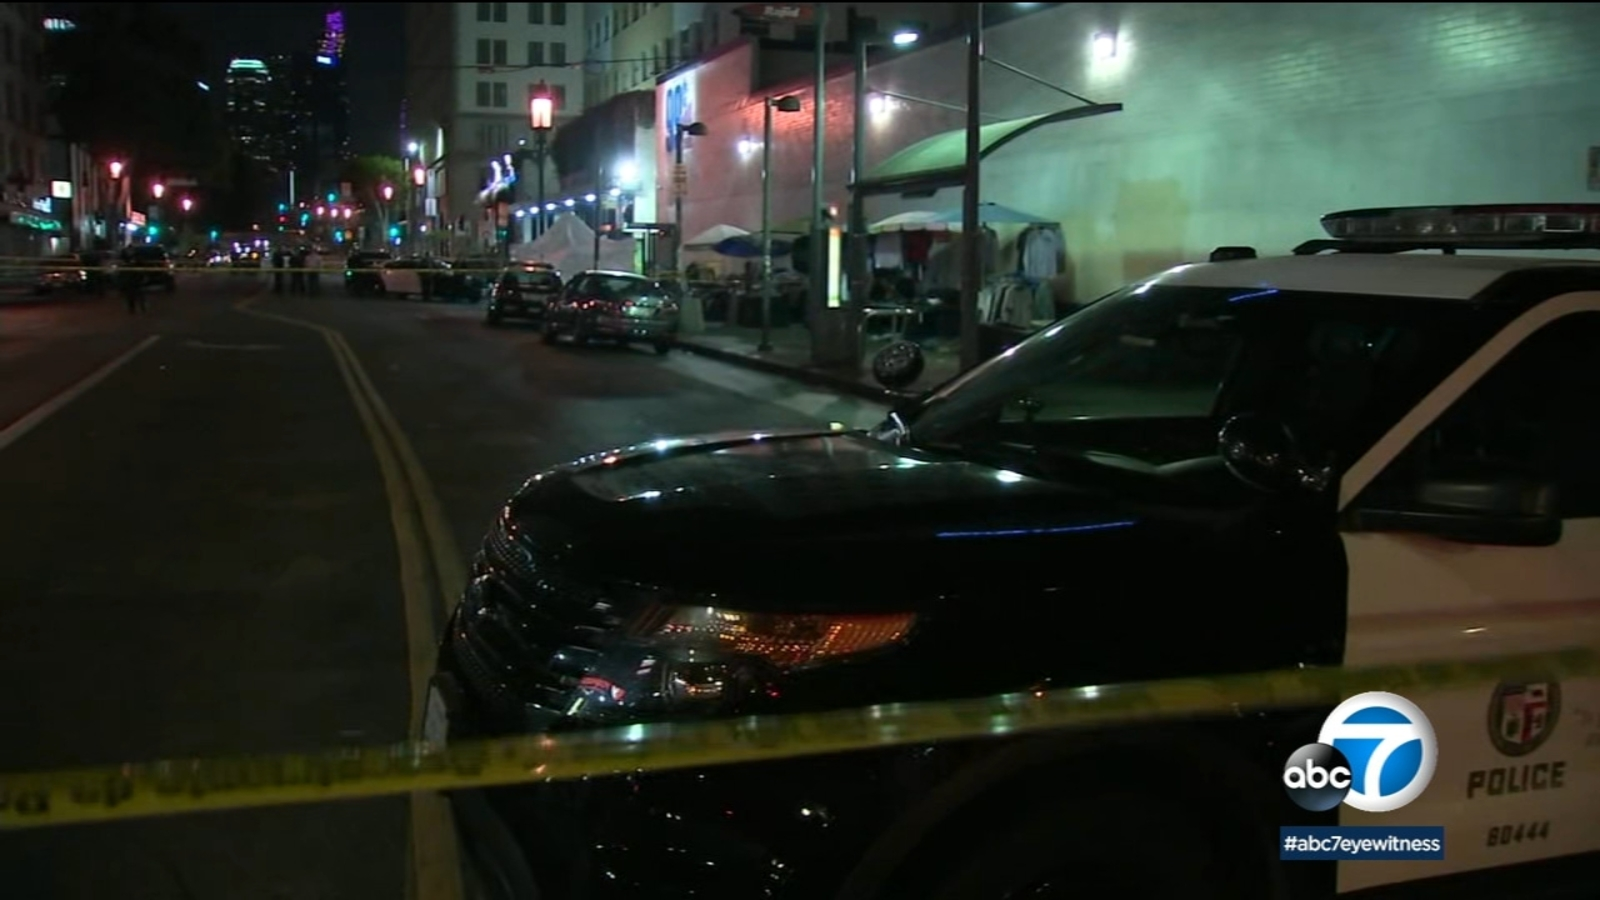 1 killed in shooting at bus stop in crowded area of Westlake; 2 suspects detained